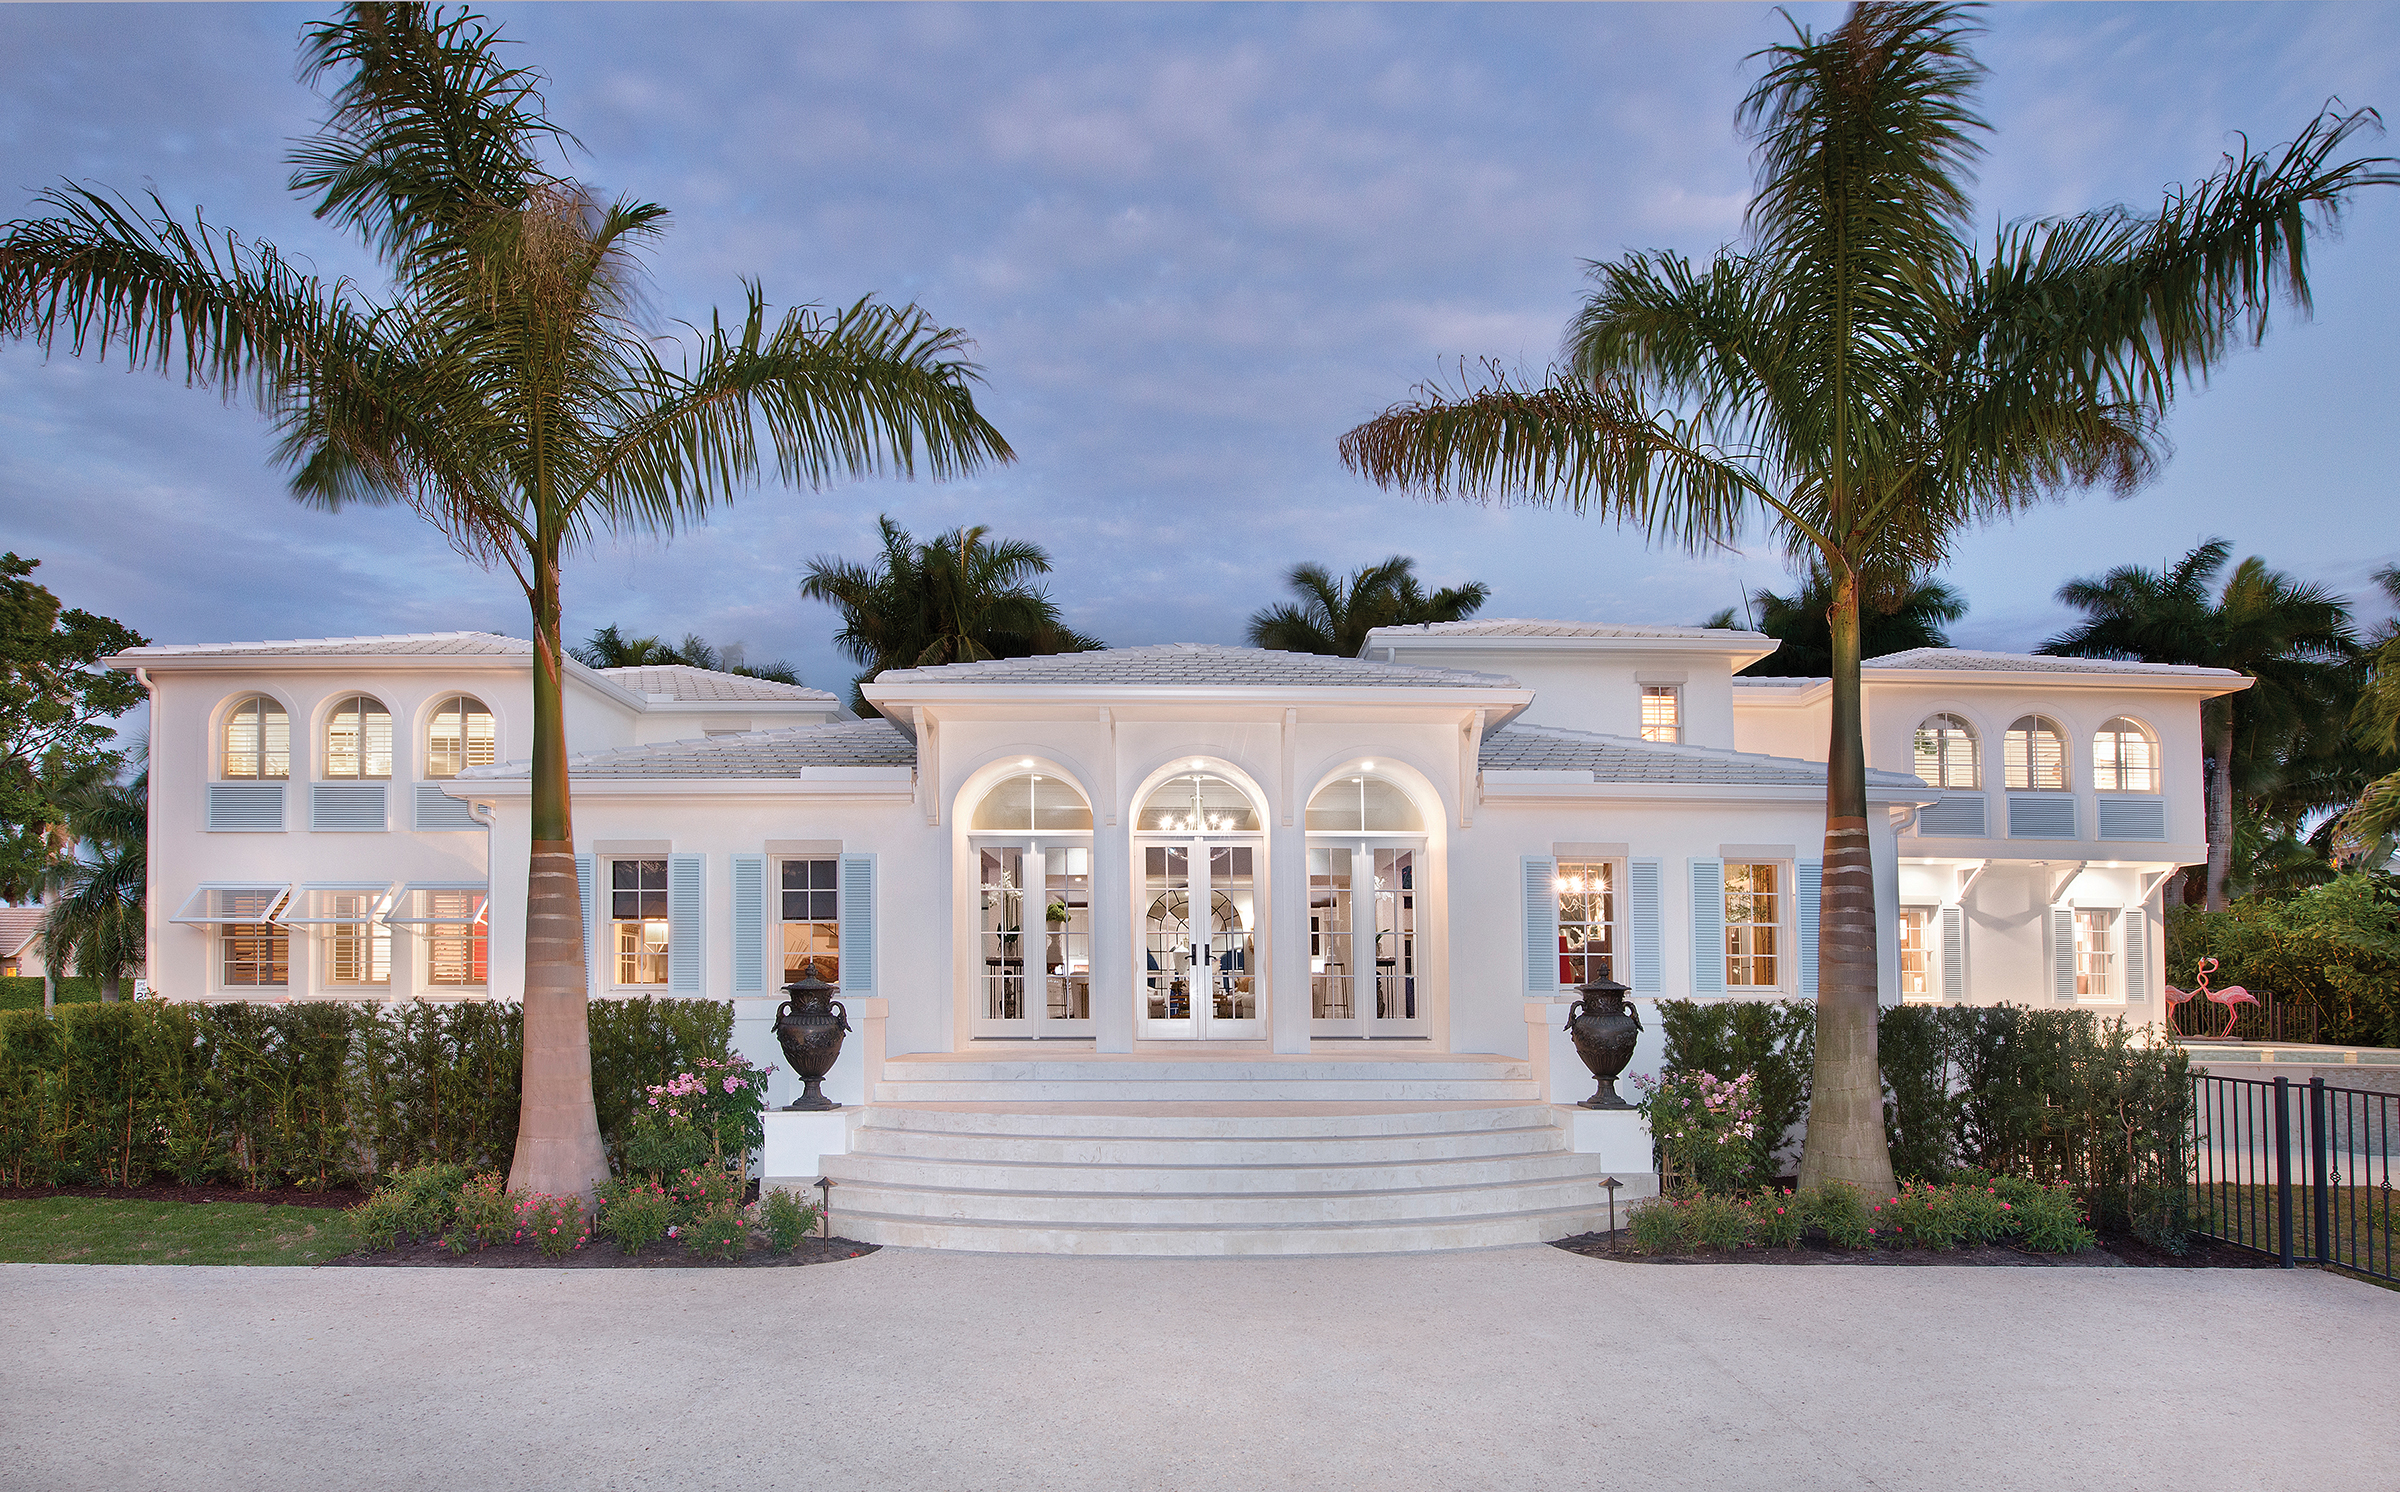 "As the Bermuda-style home is viewed from the new custom-poured shell driveway one would never guess at the extensive redesign and artfully executed renovation which took place. The orientation of the home was changed from the narrow side street to face Gulf Shore Boulevard, a second two-story wing was added on the right, and the triple-arches were changed to reveal a new grand entryway. ""It took a lot of structural re-engineering, but I'm glad we were able to add the arches because they look spectacular as you approach the house,"" notes builder Jay Bowerman."